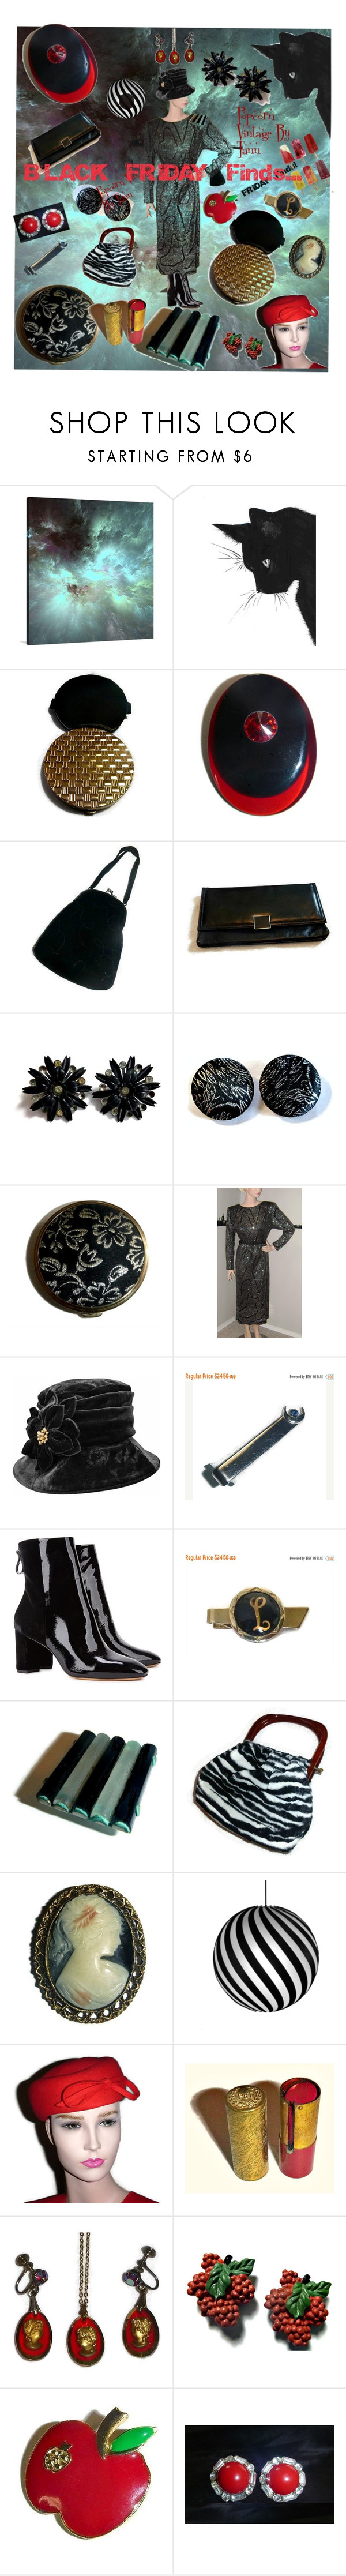 """BLACK FRIDAY Vintage Finds..."" by popcornvintagebytann ❤ liked on Polyvore featuring Alexandre Birman, David Trubridge, CORO and vintage"